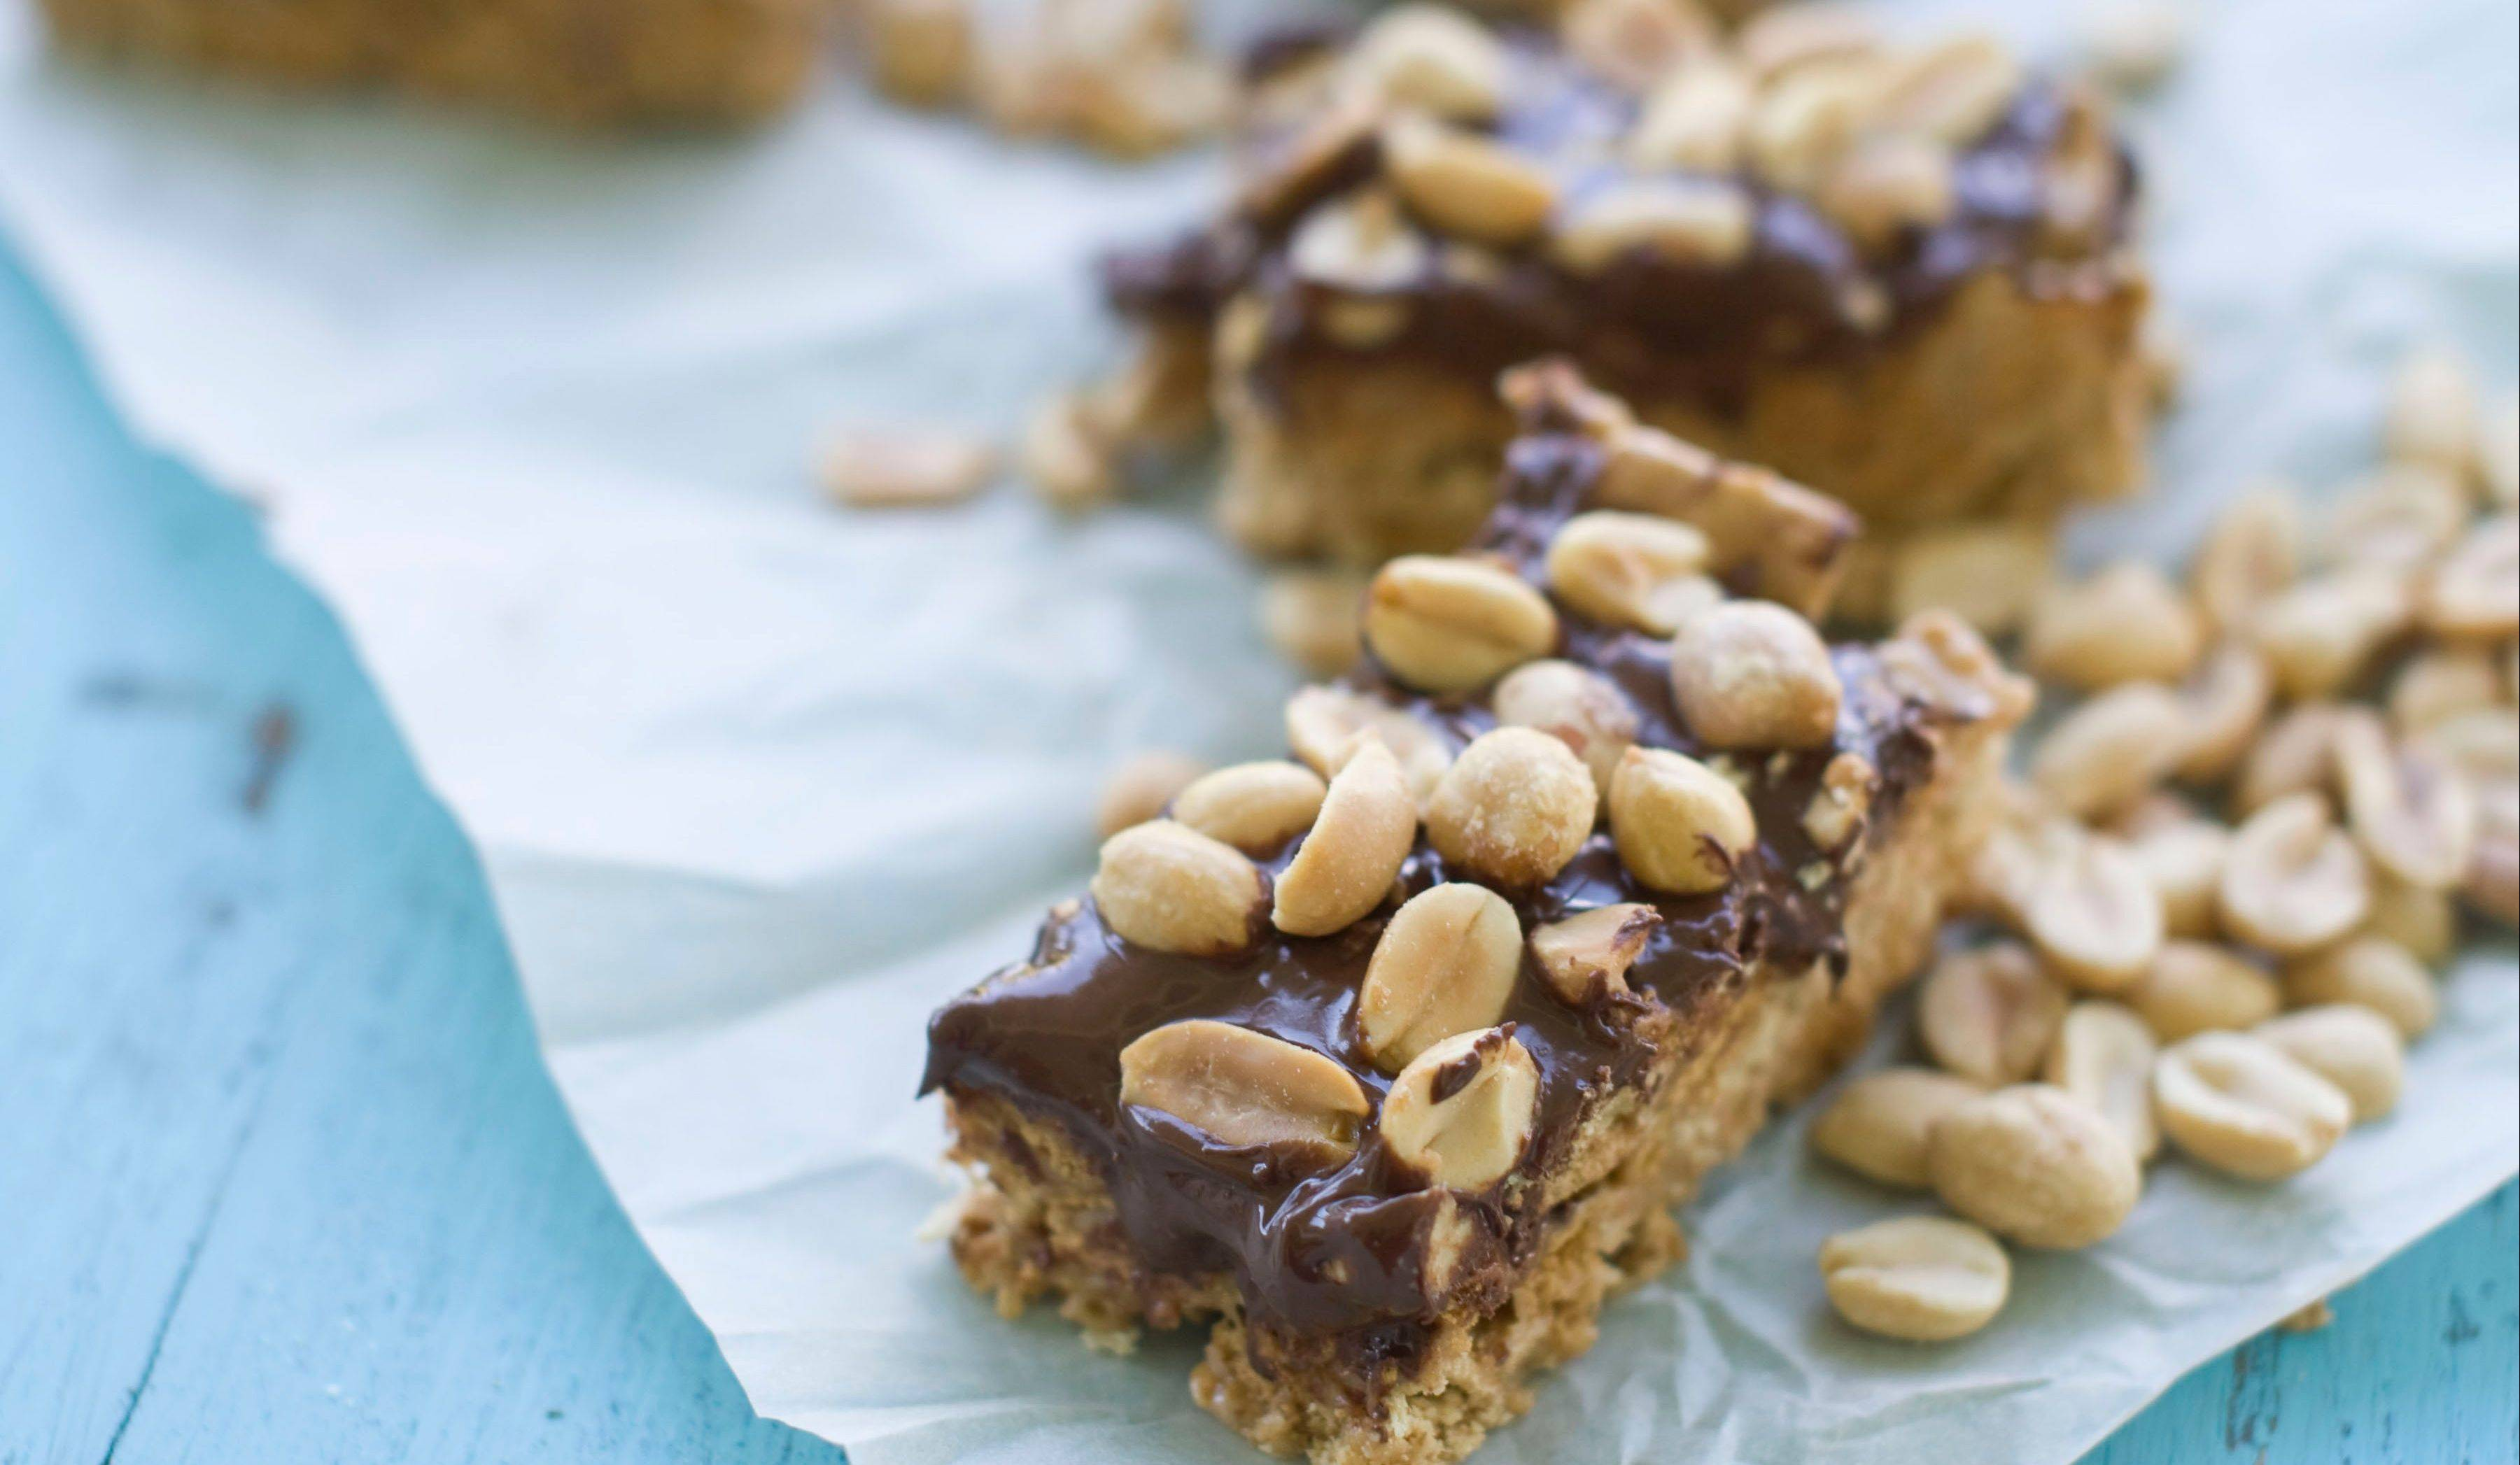 What could be better than a s'mores after school? Peanut Butter S'Mores Bars, of course.